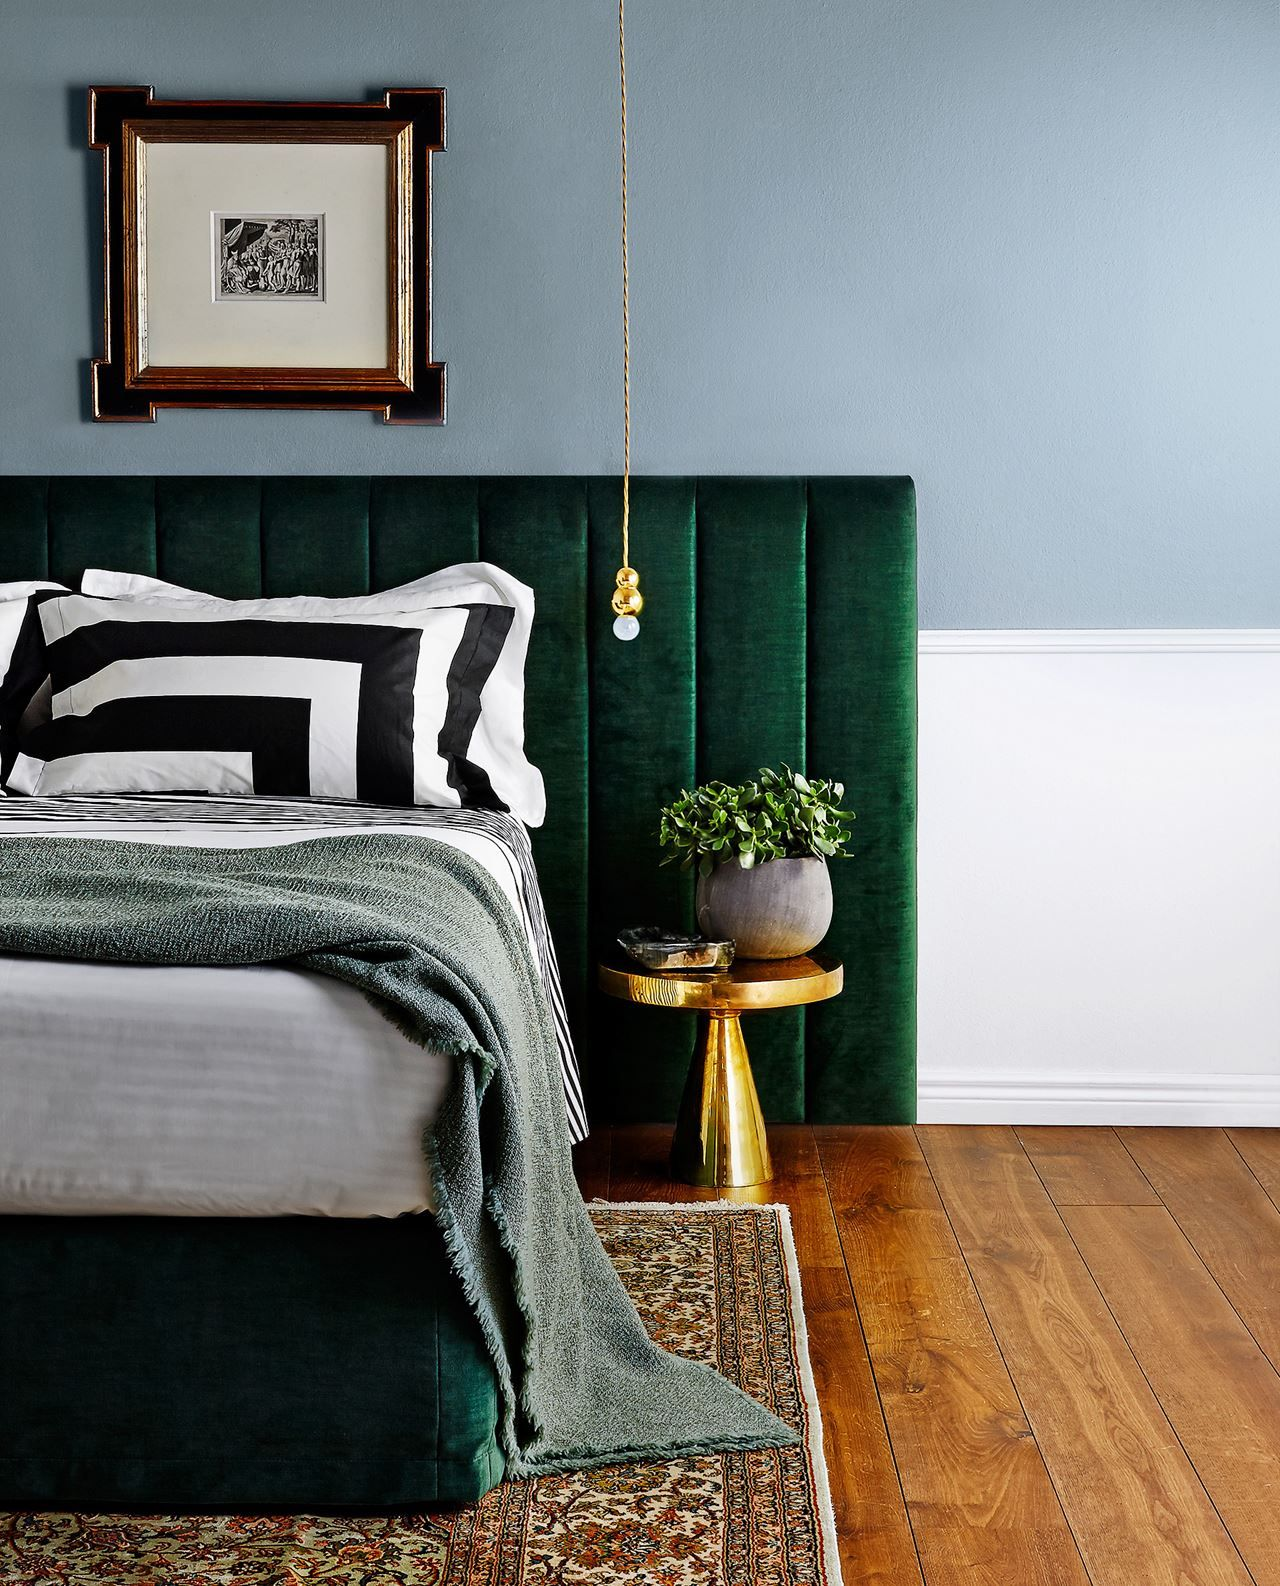 5 beautifully appointed upholstered bedheadsRich forest green